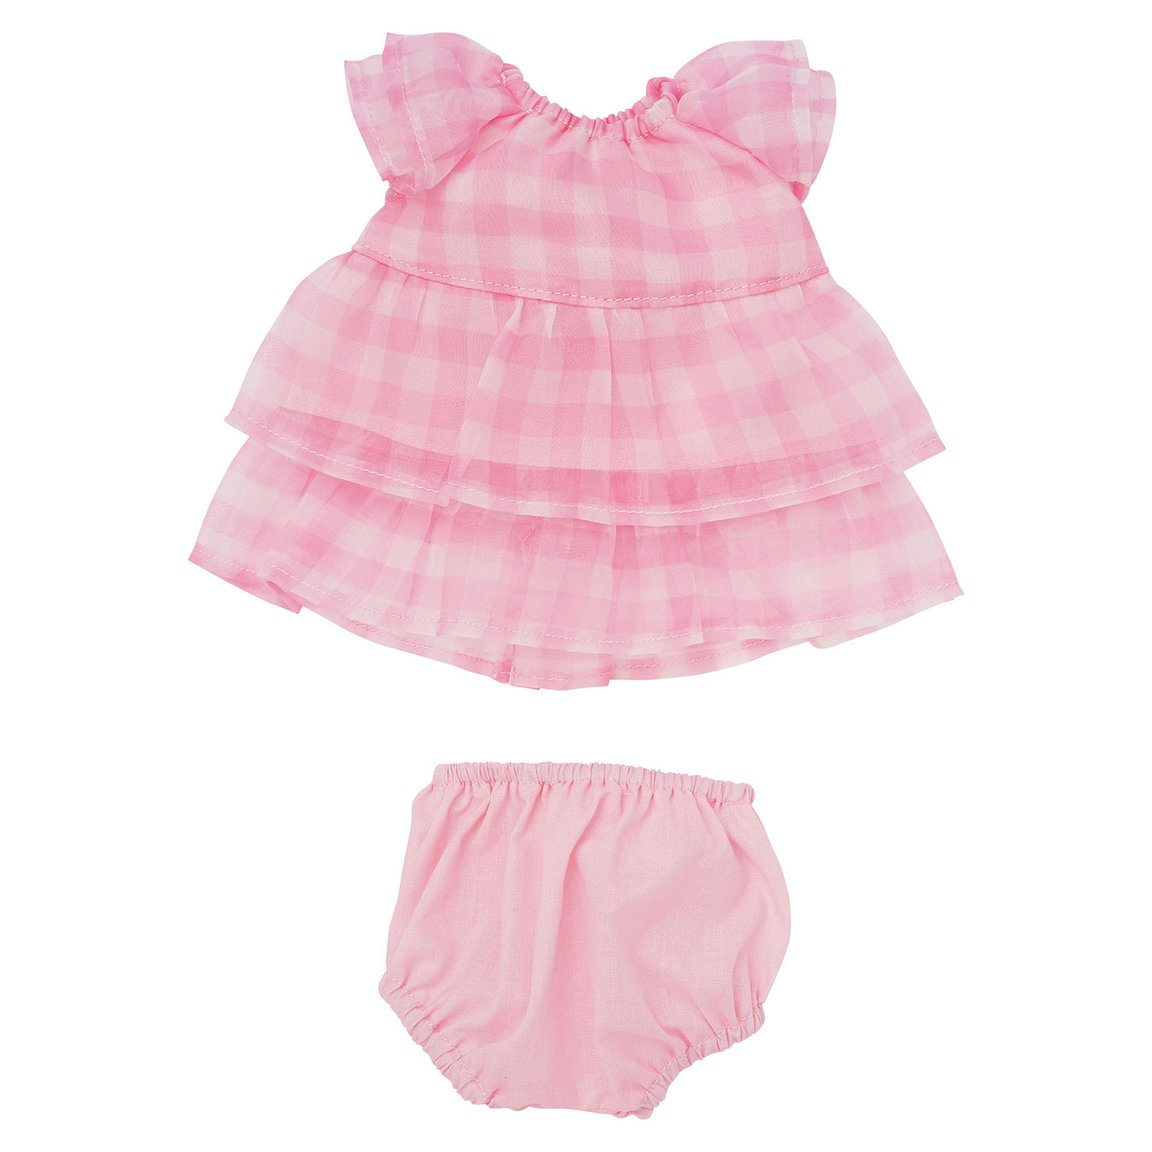 Manhattan Toy | Baby Stella Pretty in Pink, Doll Outfit